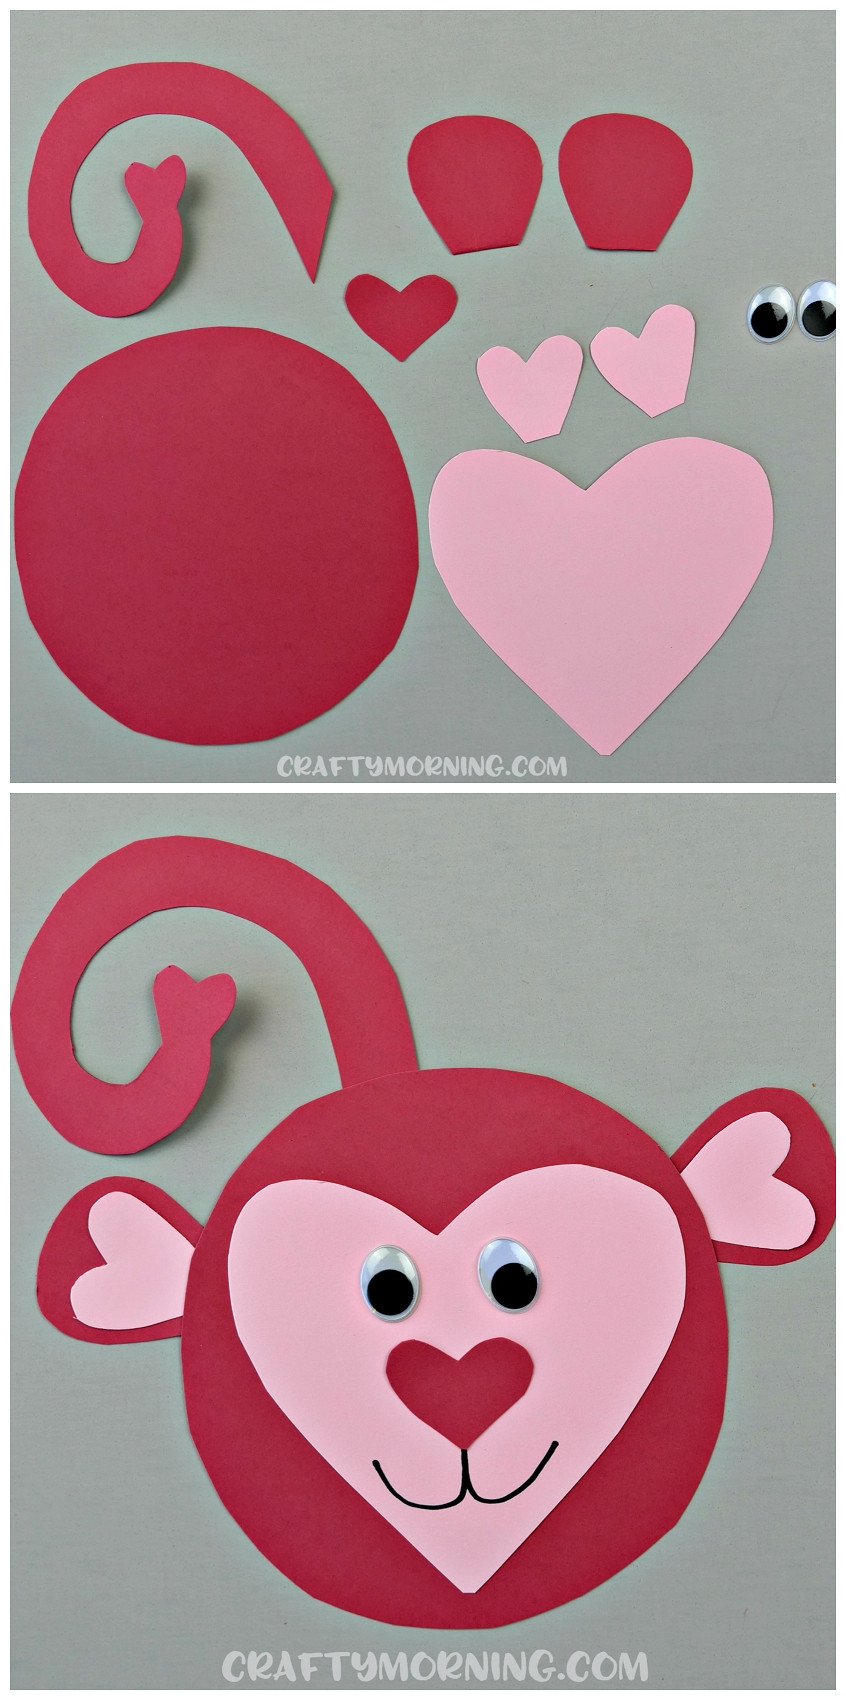 Best ideas about Valentine Arts And Crafts For Preschoolers . Save or Pin Valentines Crafts For Boys Now.